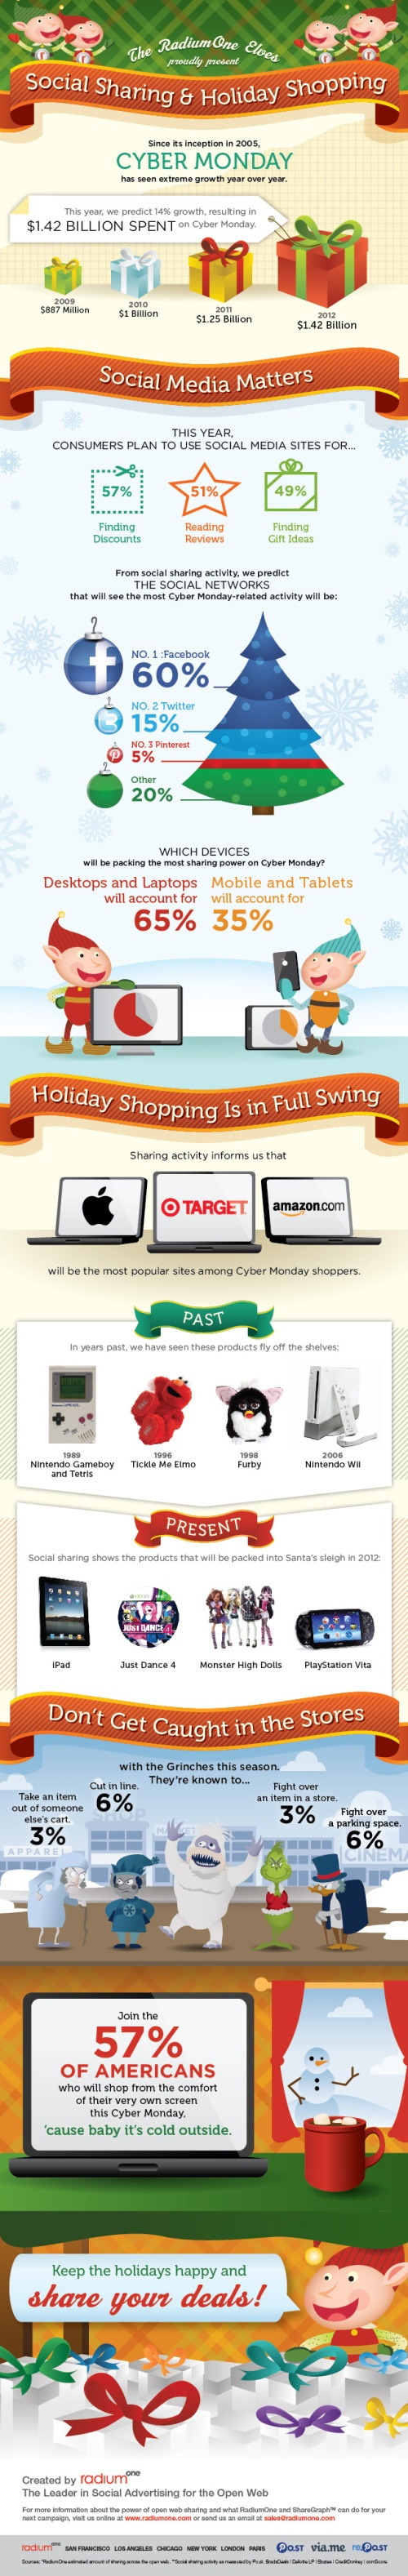 Cyber Monday Infographic 2012